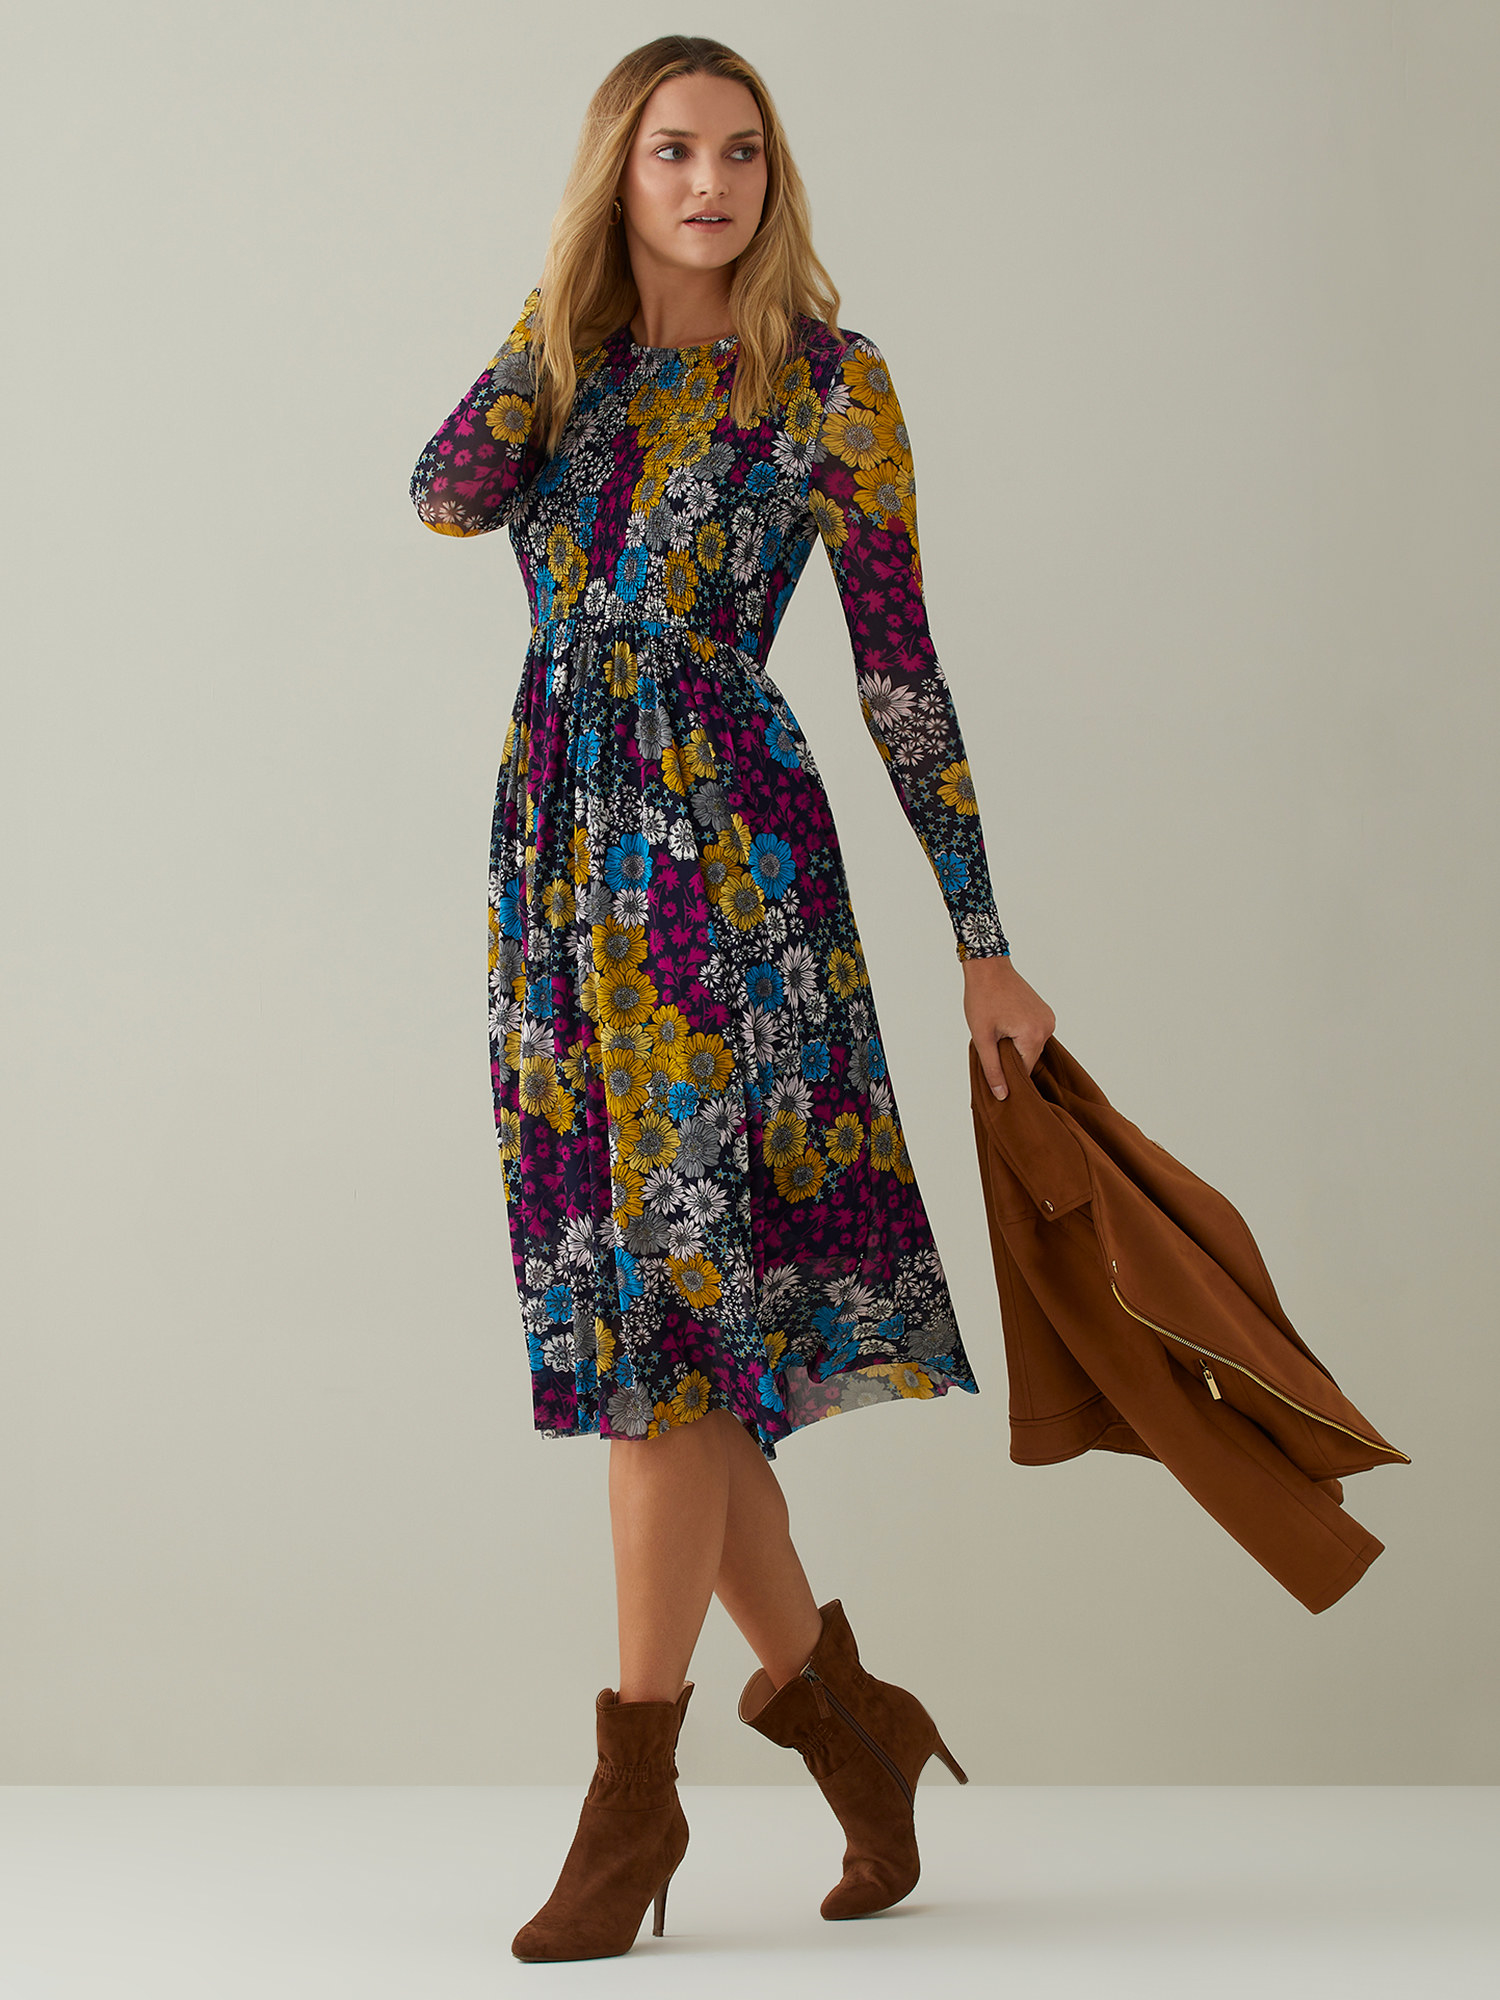 The floral-printed mid-length dress